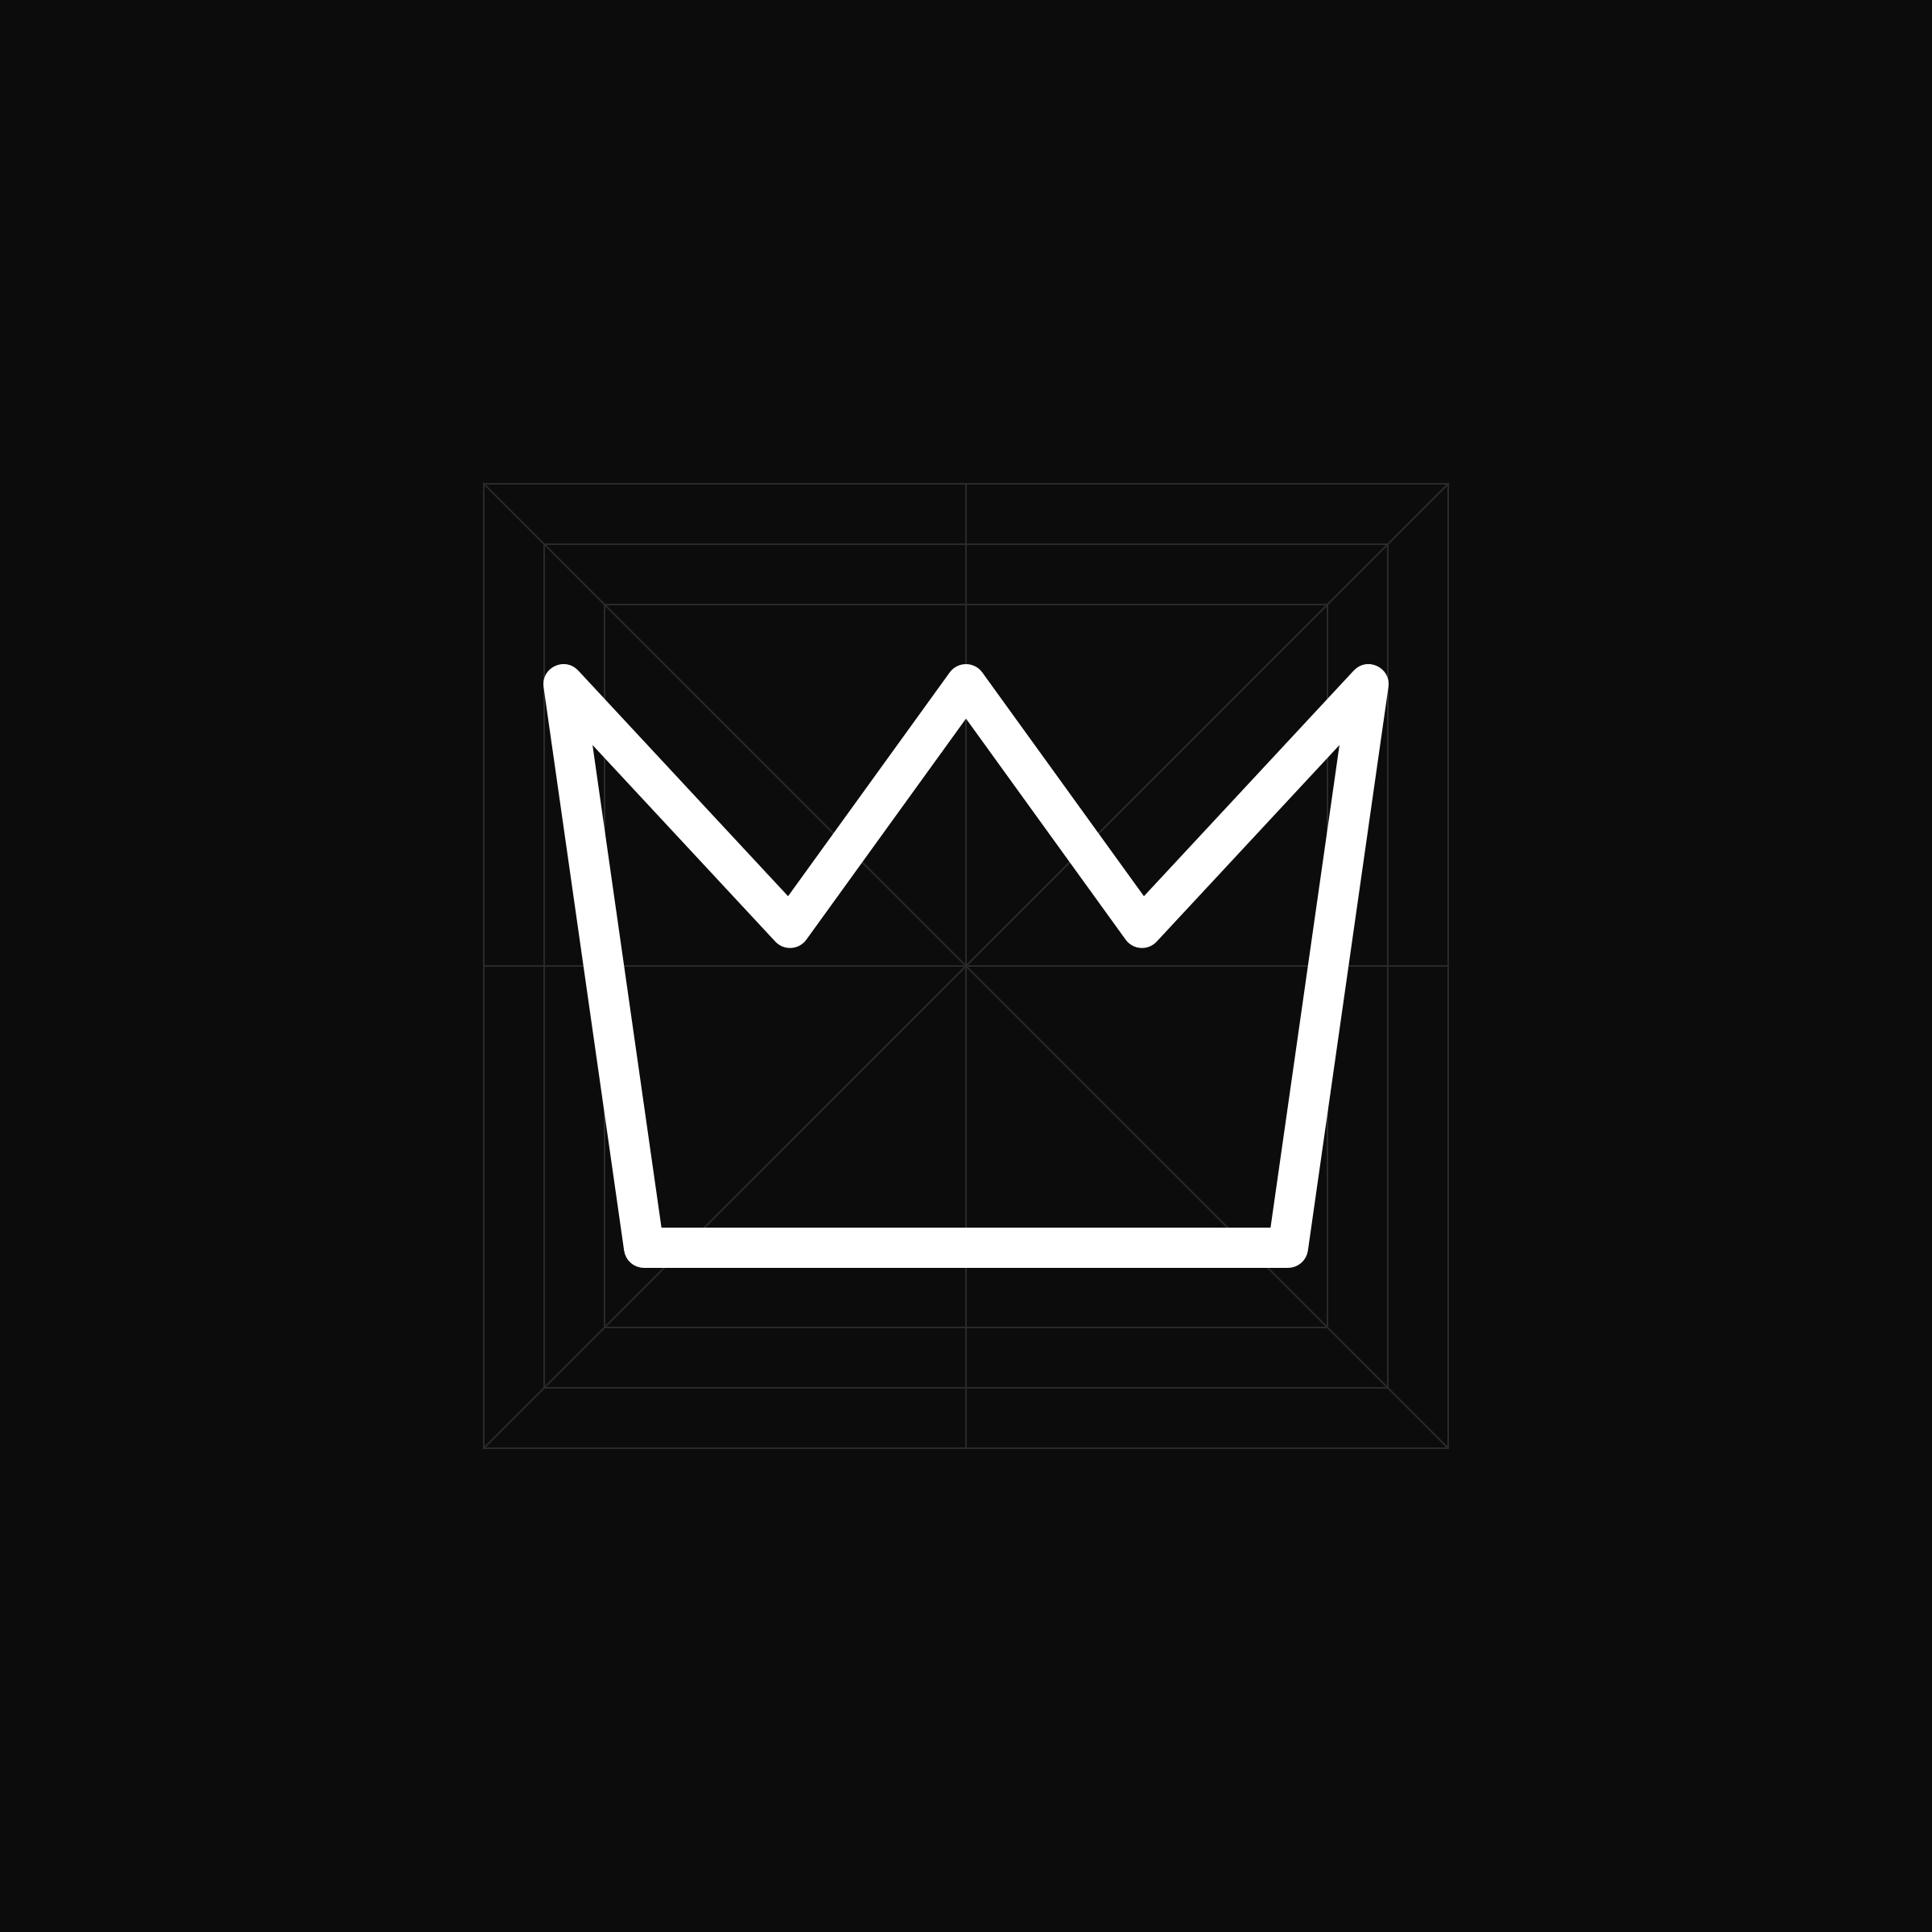 vzy-icon-crown-outline